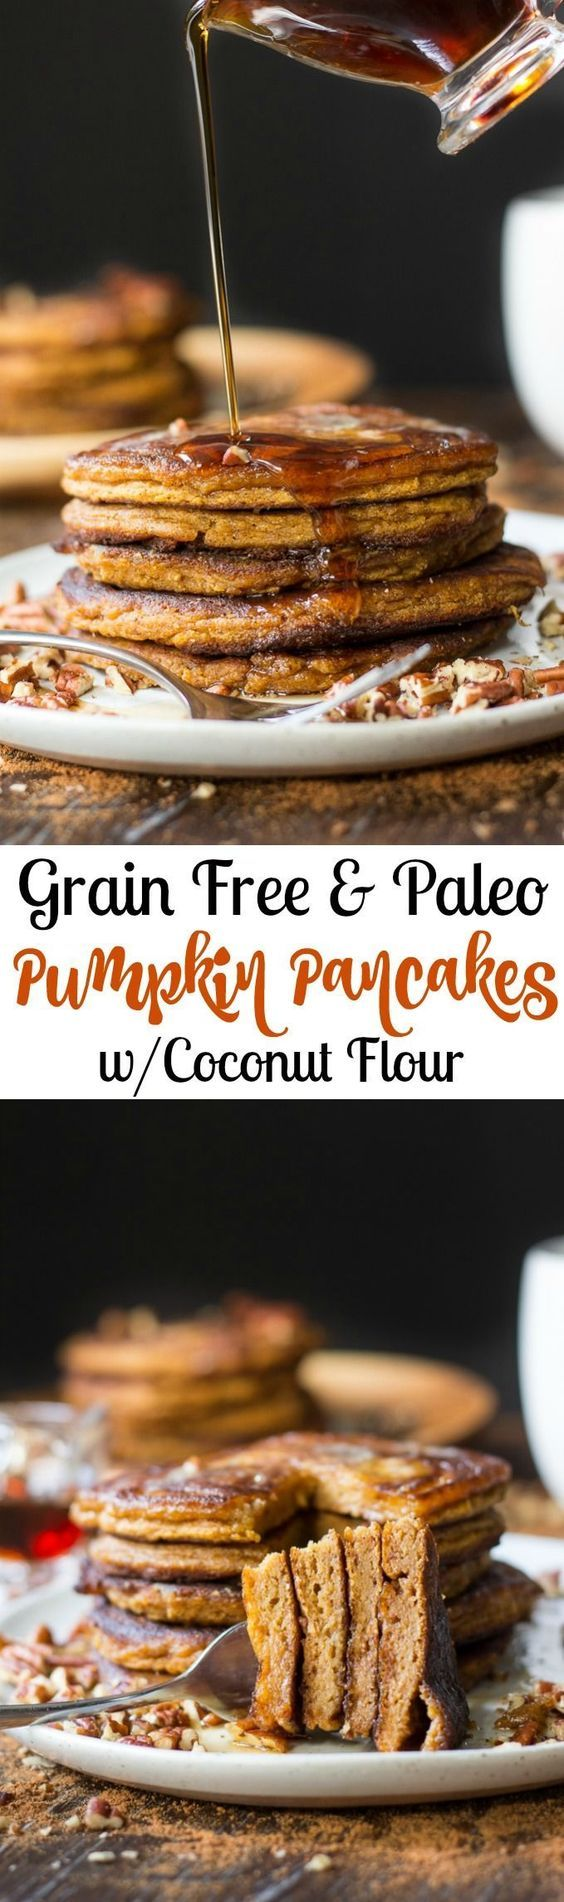 grain free and paleo pumpkin pancakes made with coconut and tapioca flour…